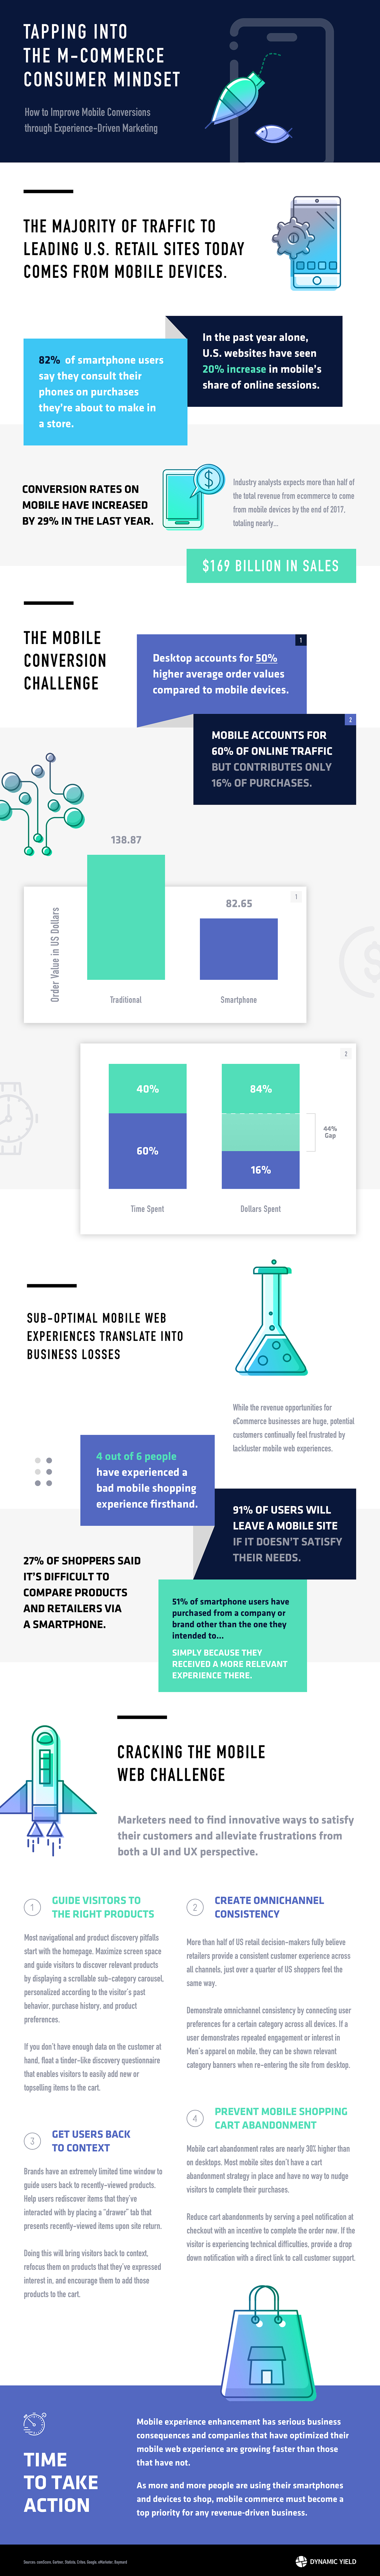 Cracking the Mobile Web Challenge [Infographic] - Closing the Mobile Conversion